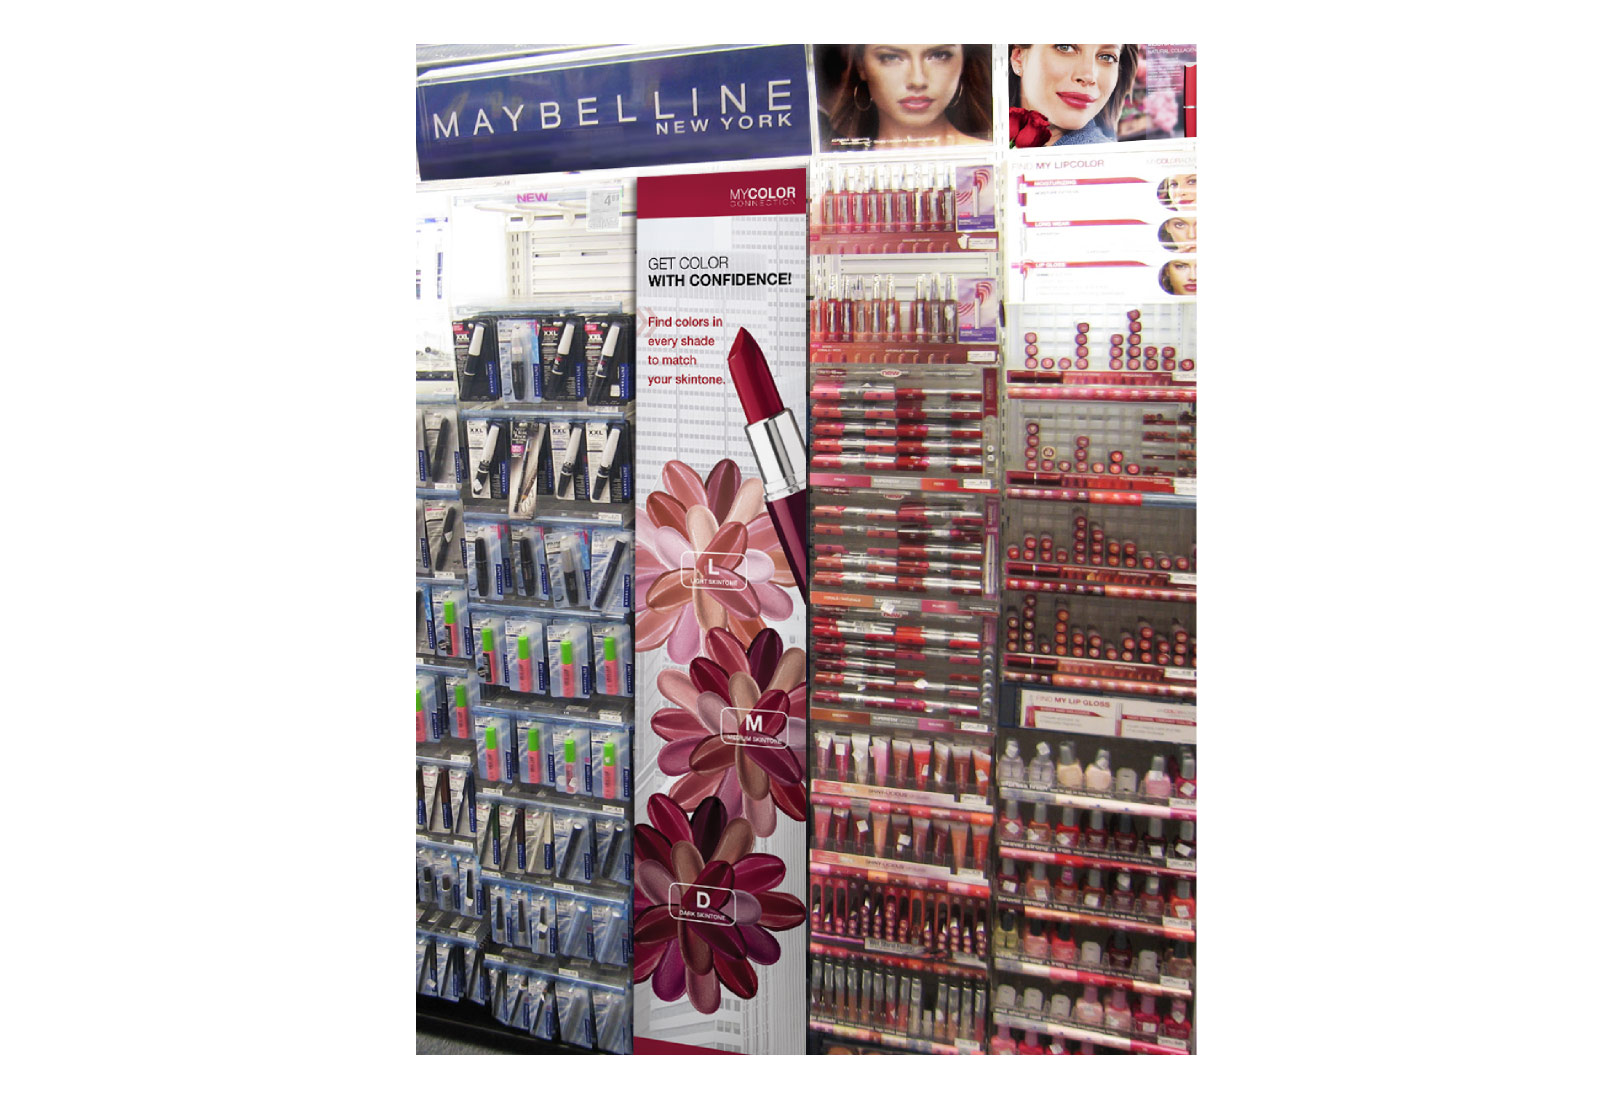 Maybelline-Point-of-Purchase